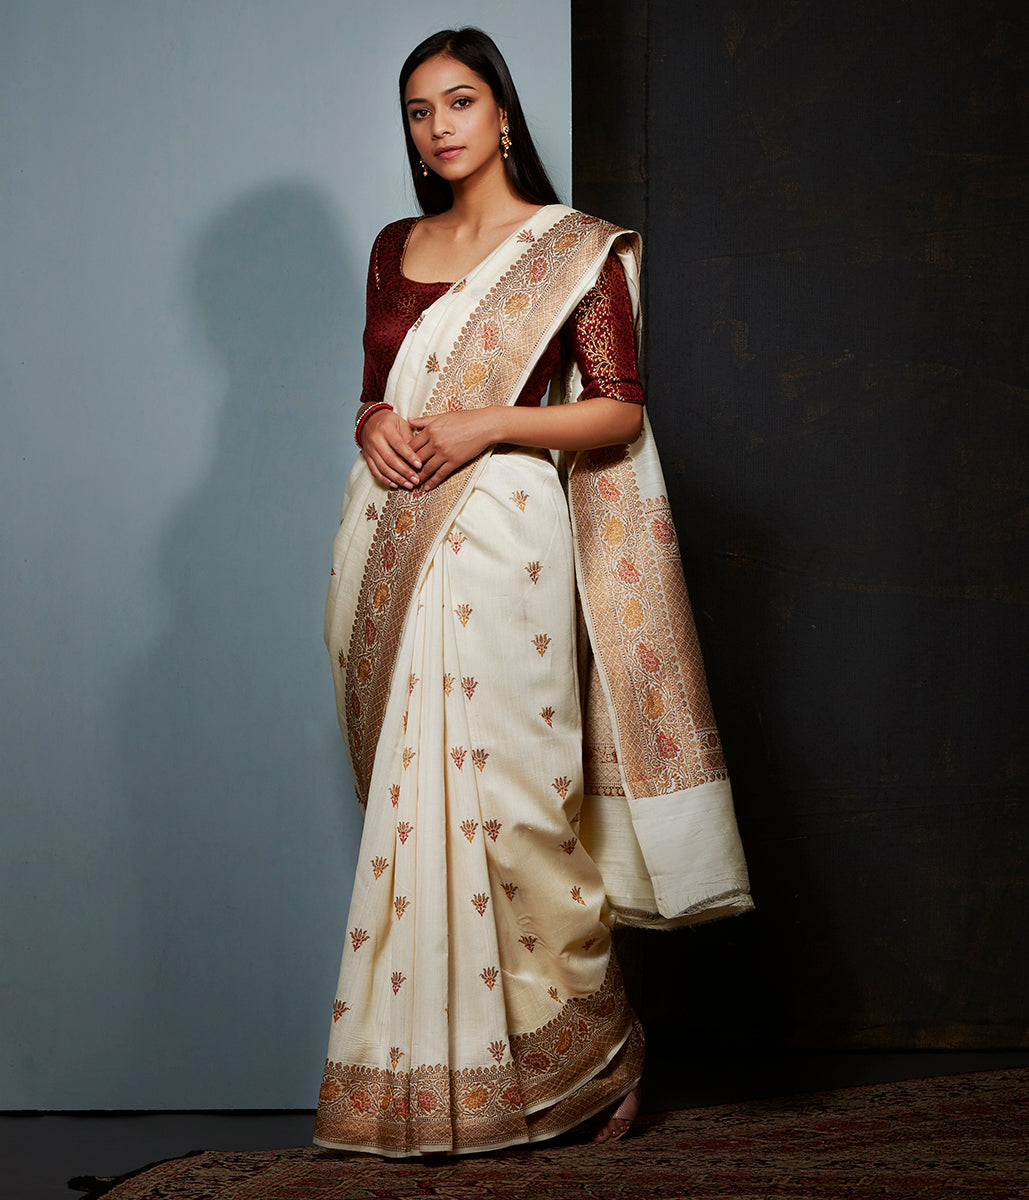 Offwhite munga silk saree with floral meenakari border in rust and mustard and small motifs